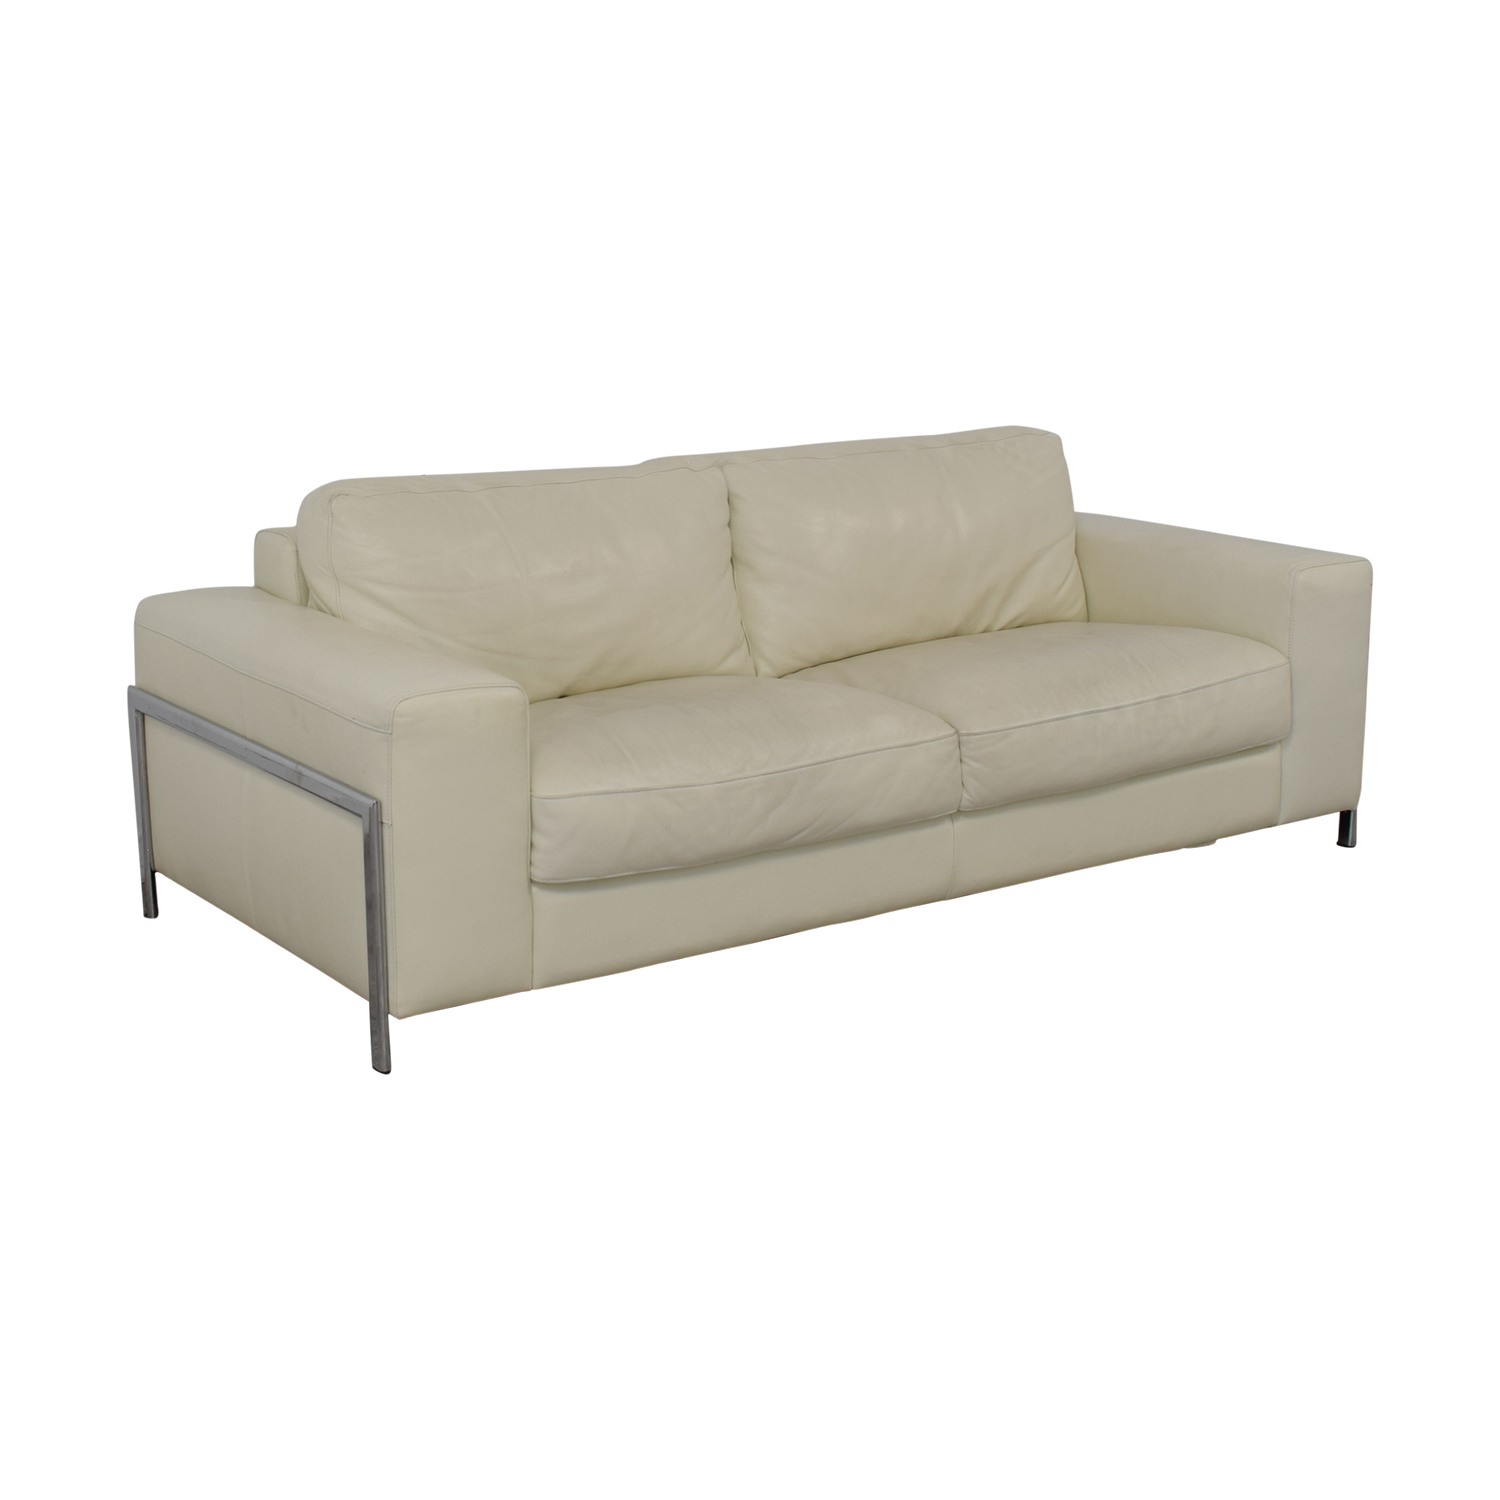 72% OFF - Cort Cort Encore Home Designs Modern Leather Sofa / Sofas